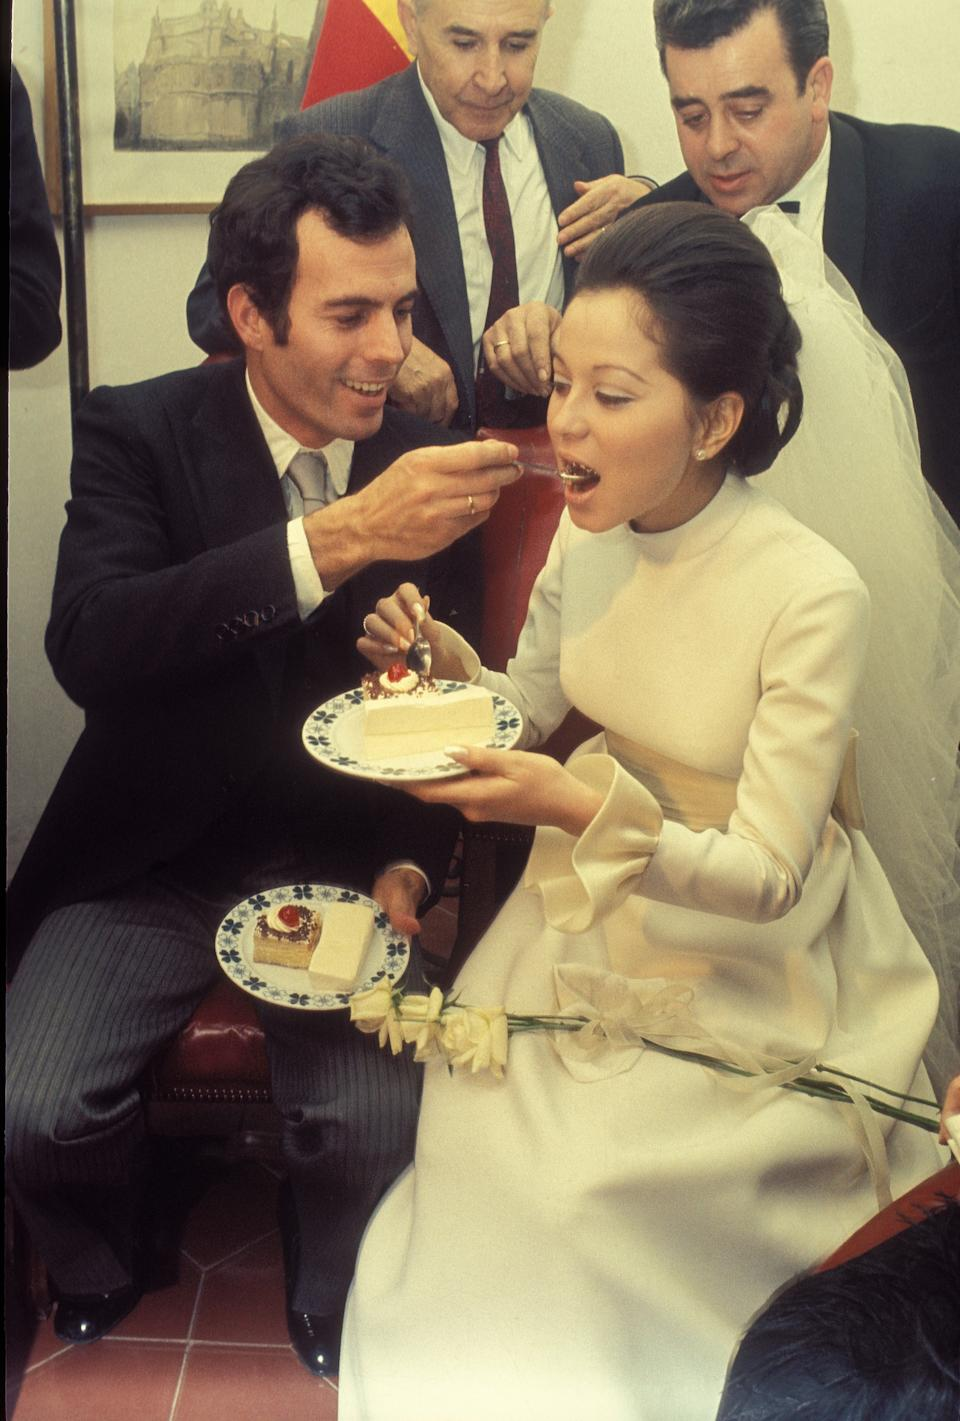 SPAIN - JANUARY 01:  Madrid - Spain - Weddings of the singer Julio Iglesias with Isabel Preysler  (Photo by Gianni Ferrari/Cover/Getty Images)